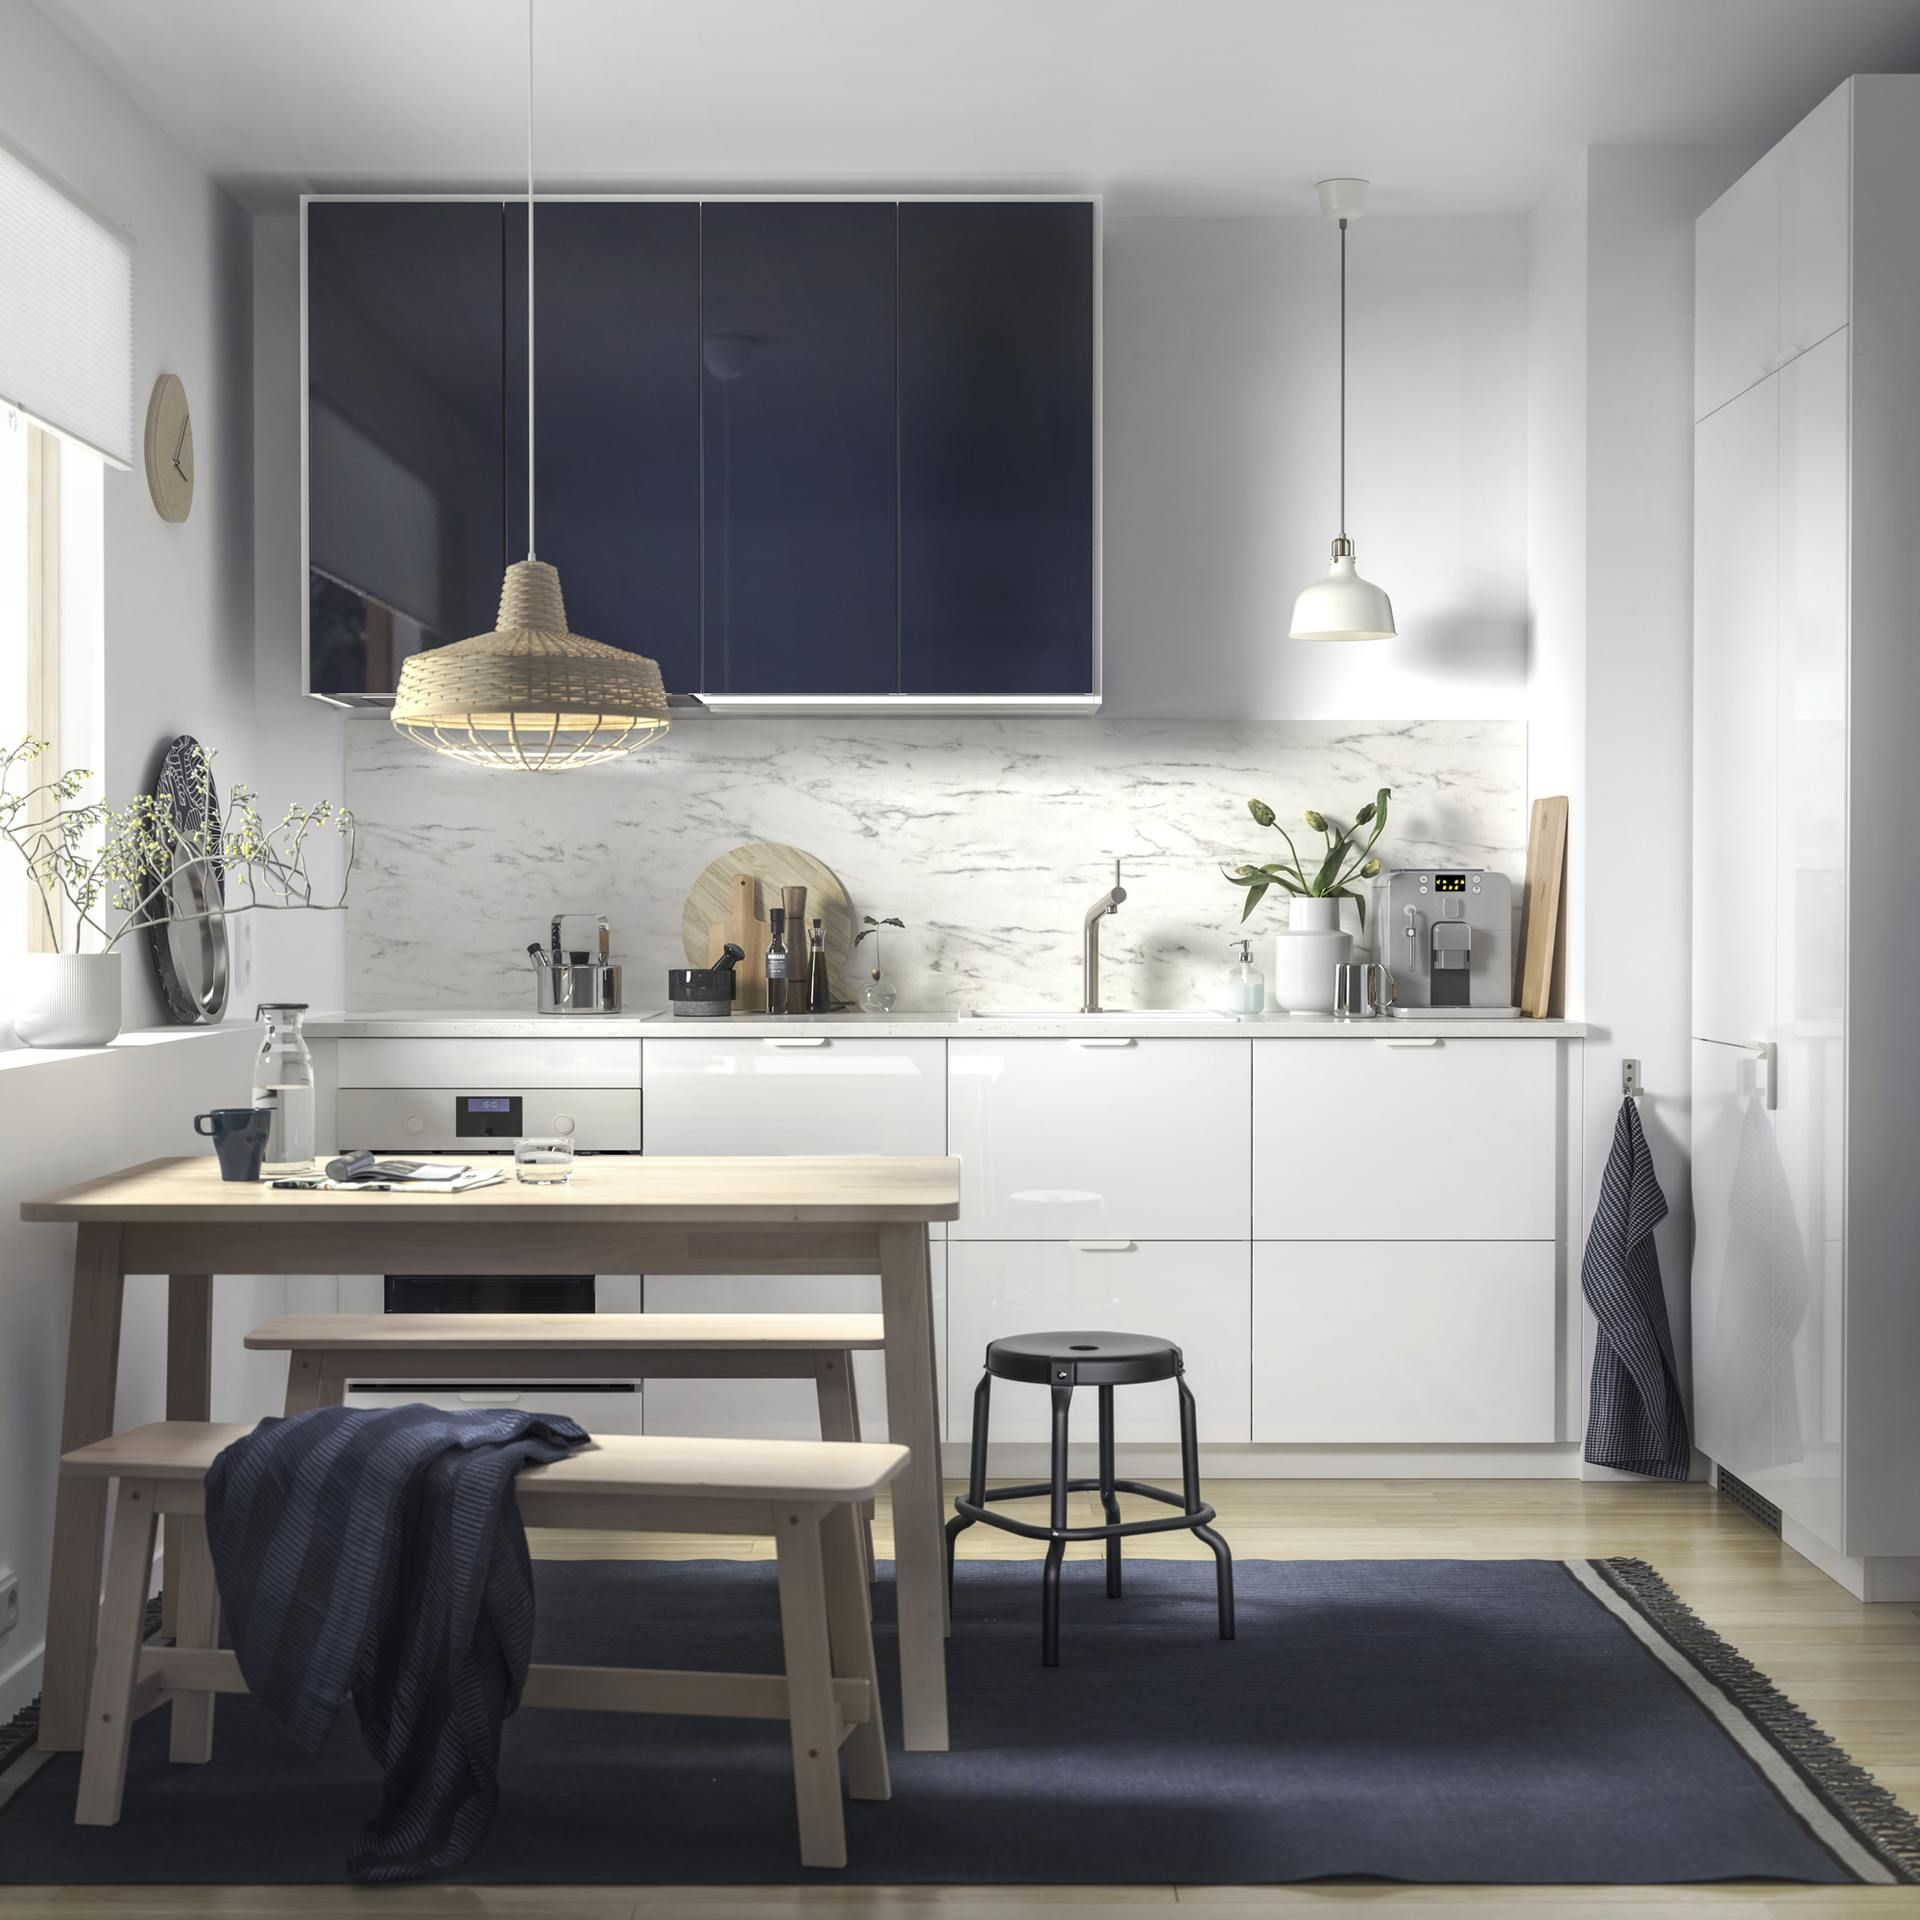 Ikea's new kitchen inspiration for the autumn of 2018